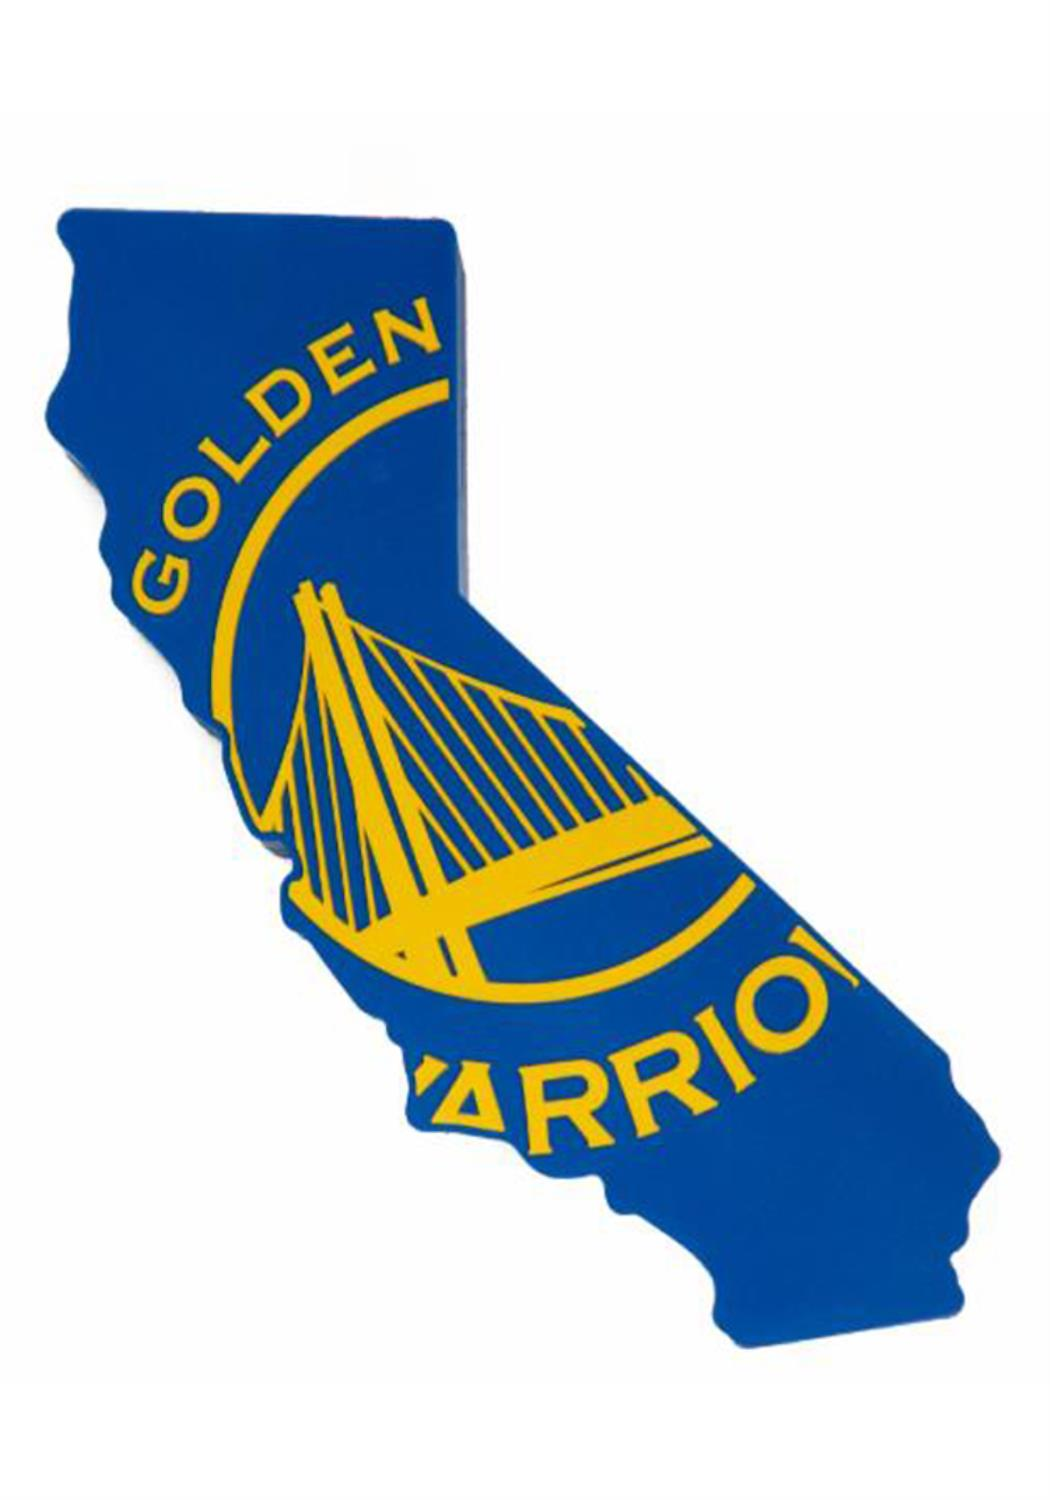 GOLDEN STATE - WARRIORS | OFFICIAL NBA LICENSED PHONE CHARGER